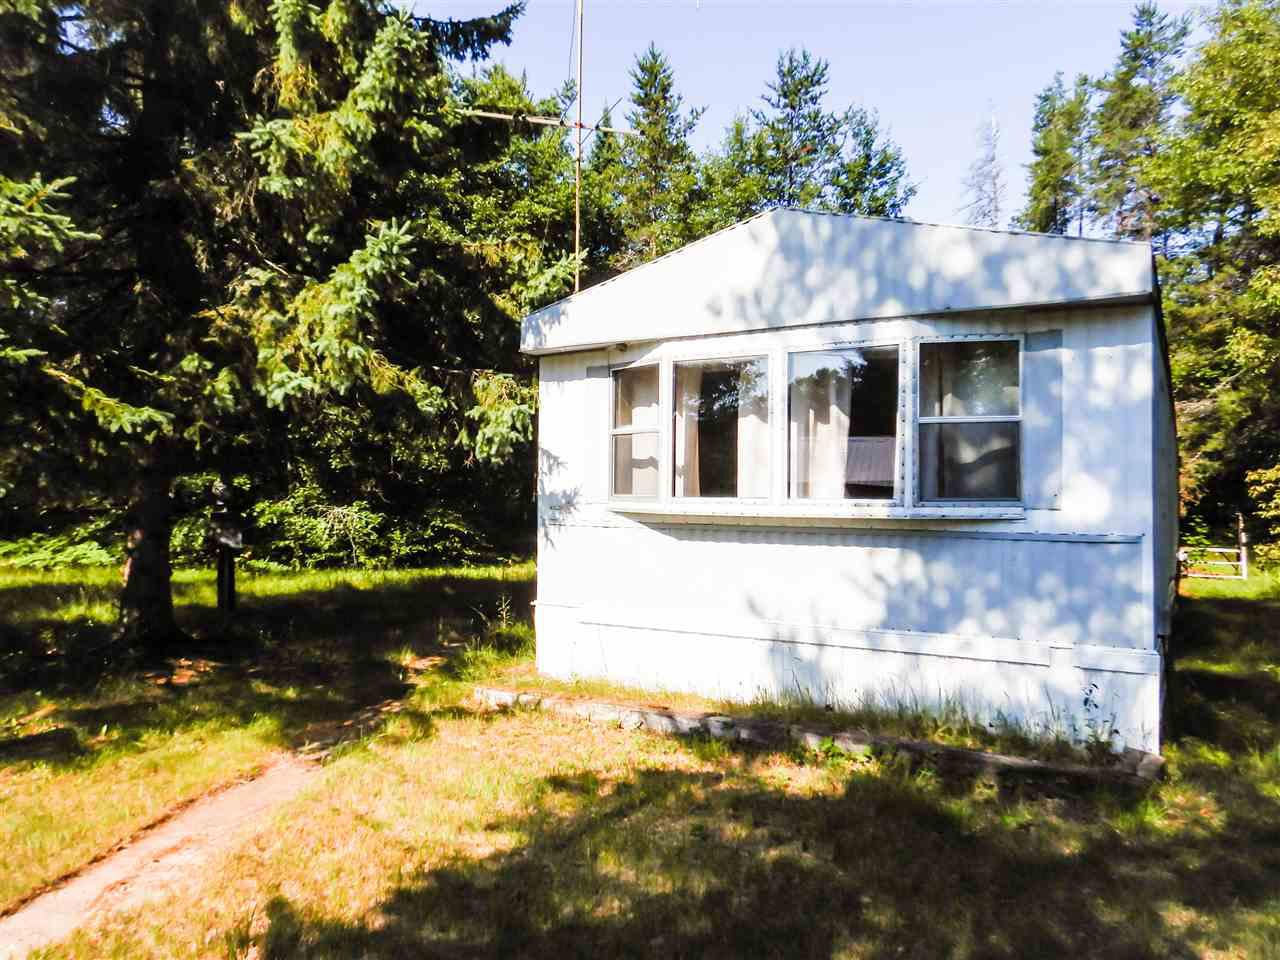 Almost one Acre of partially wooded land right off of Hwy 141. 0.8 Acres. Old Mobile home in need of much repair or just remove from property. Property does have a well. Septic set up for mobile home. Possibilities are endless with this little piece of land. Come check out today!